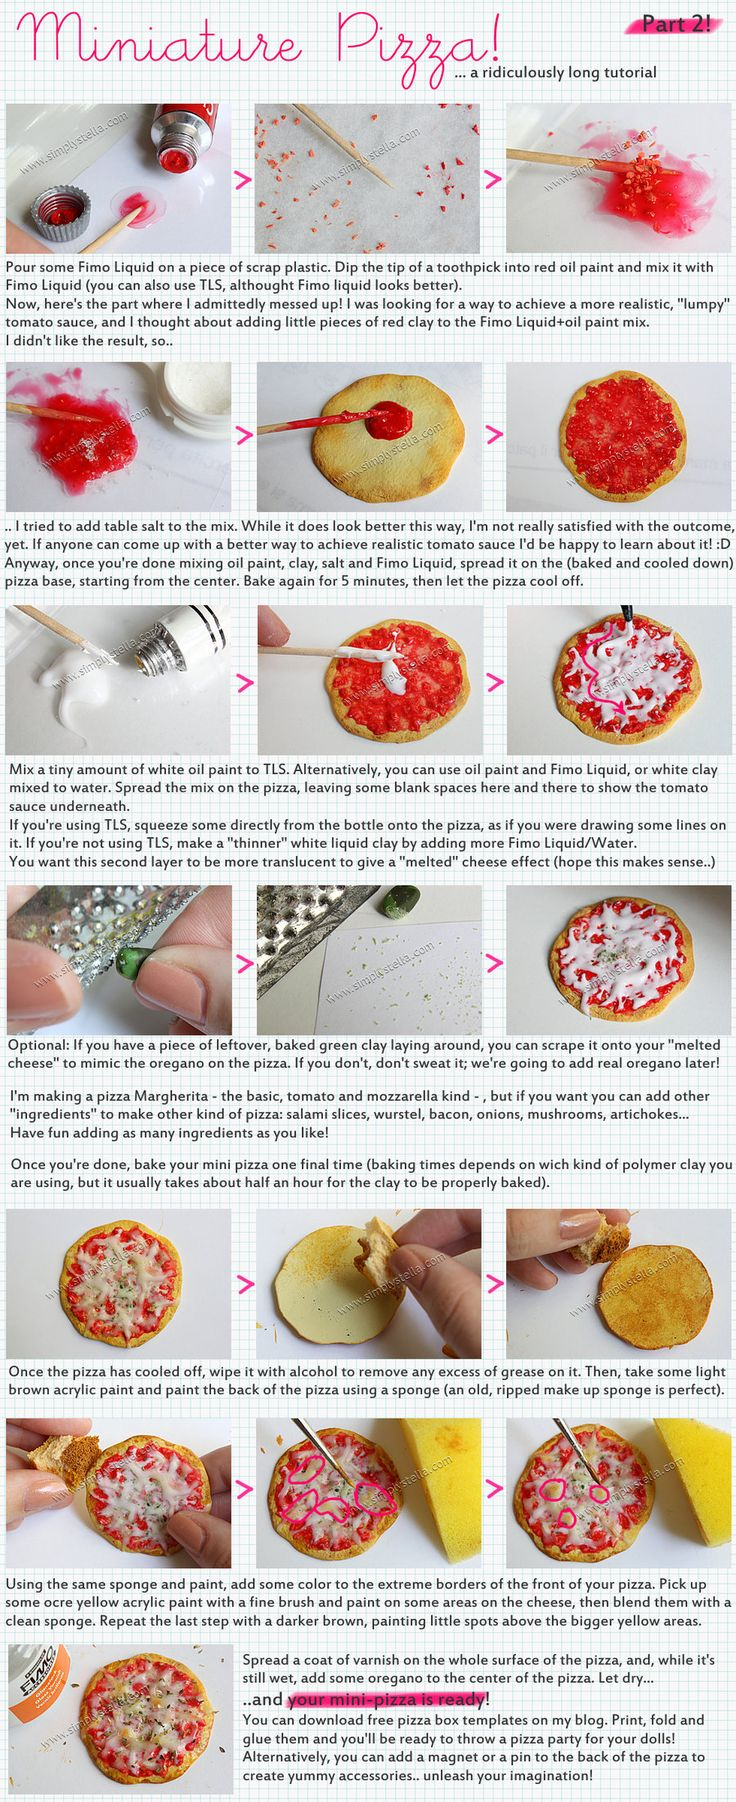 Miniature Pizza Tutorial - 2 by thinkpastel.deviantart.com on @deviantART